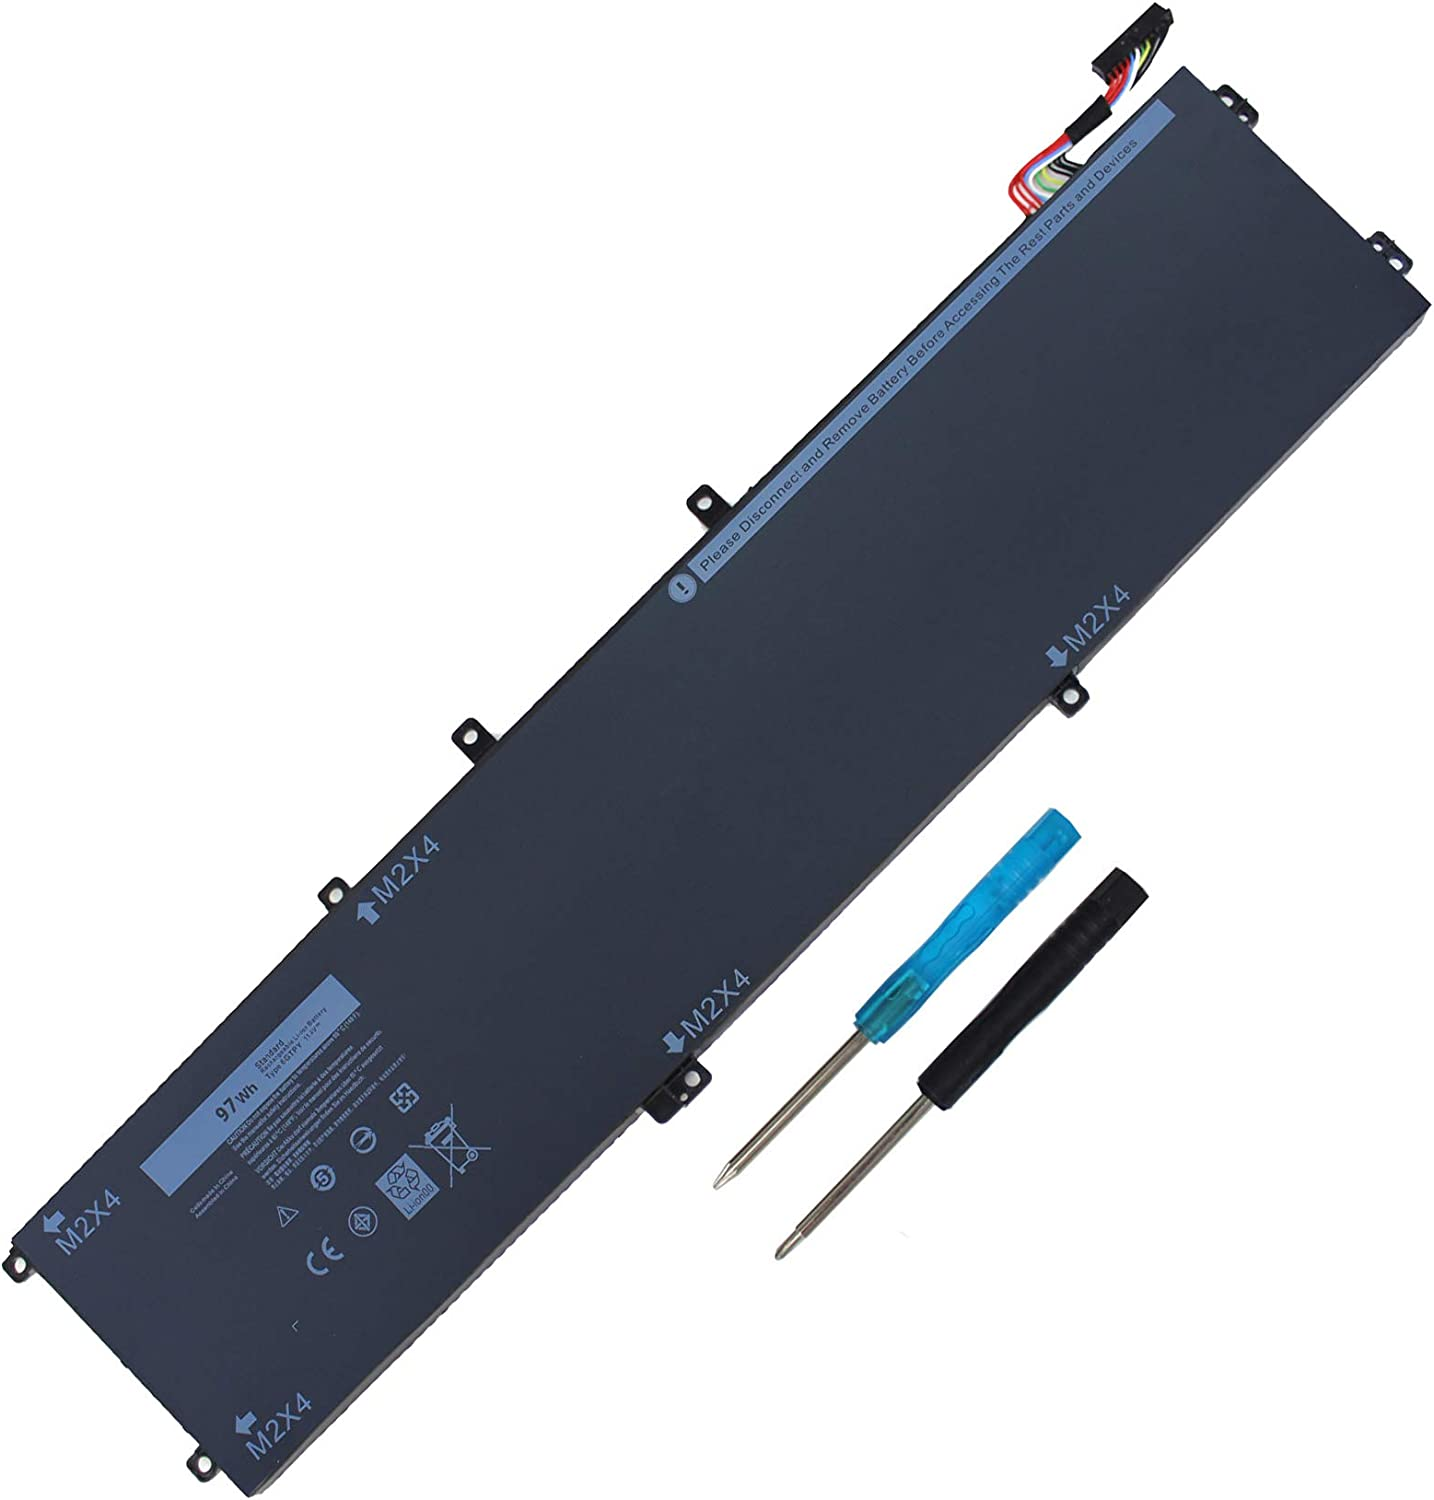 97WH 6GTPY Laptop Battery for Dell XPS 15 9550 9560 9570 Precision 5520 5530 5510 M5520 Workstation Series Notebook 5XJ28 5D91C - 12 Month Warranty